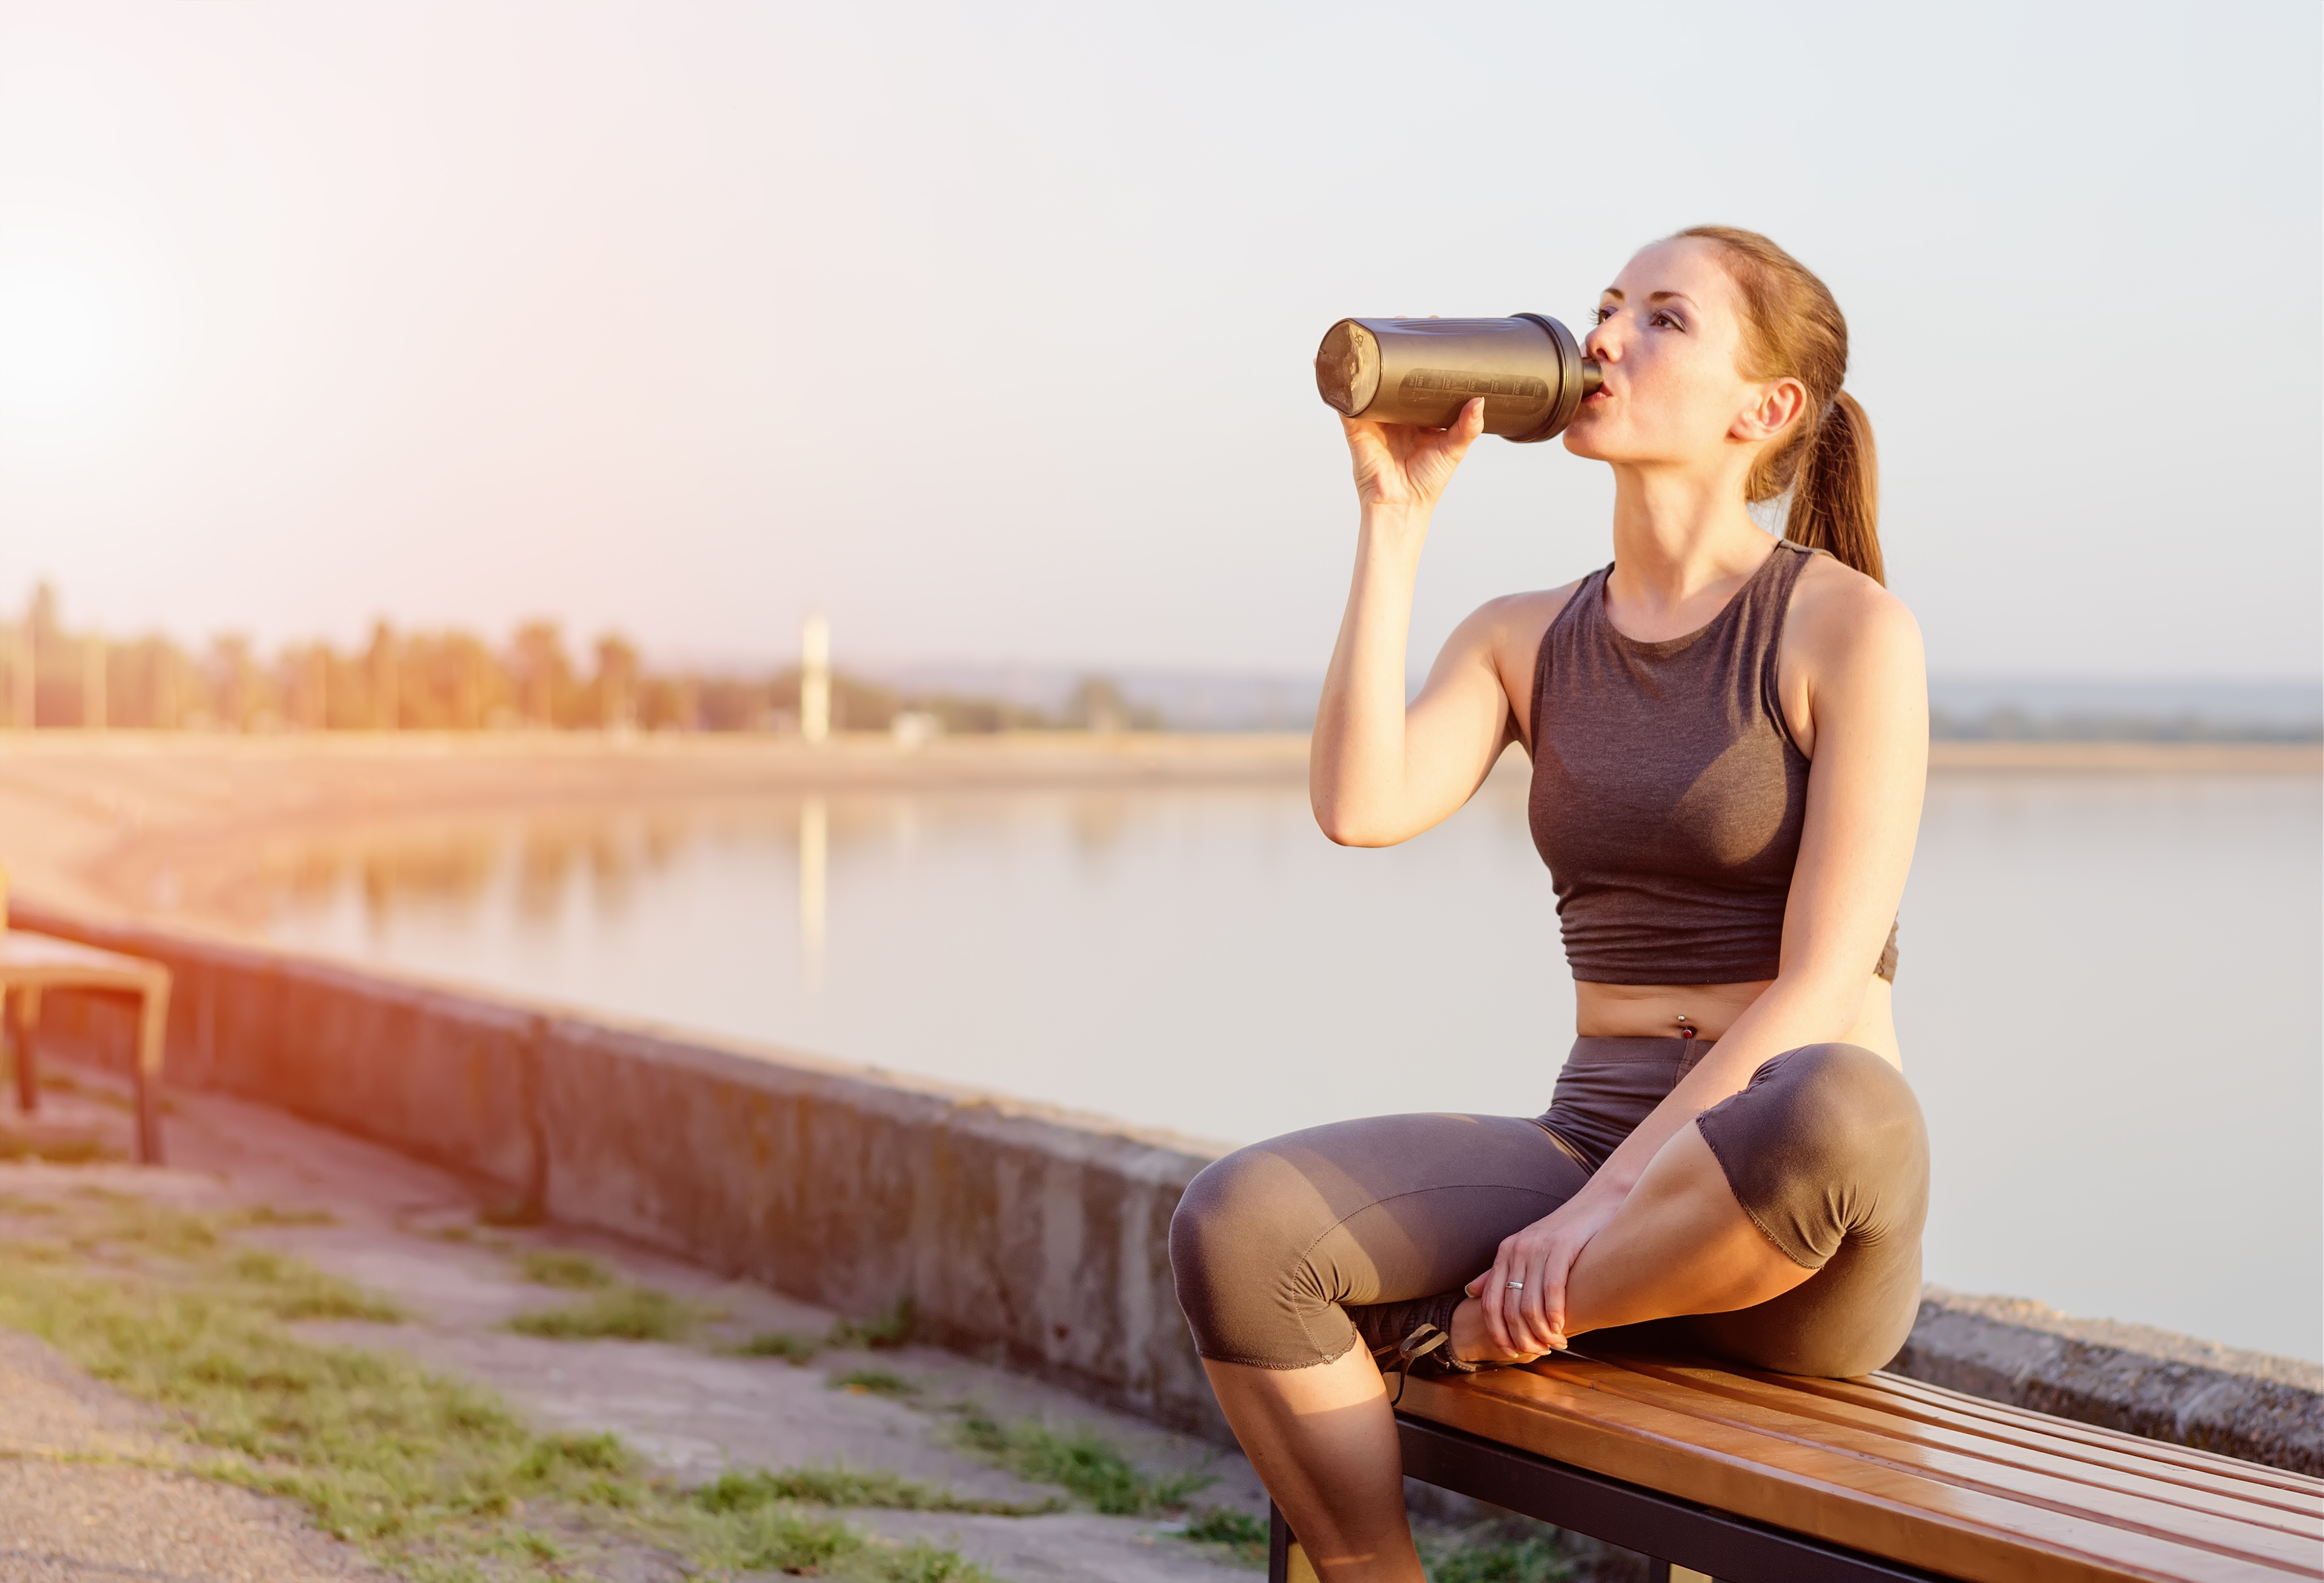 Supplements and shakes can be convenient (iStock/PA)